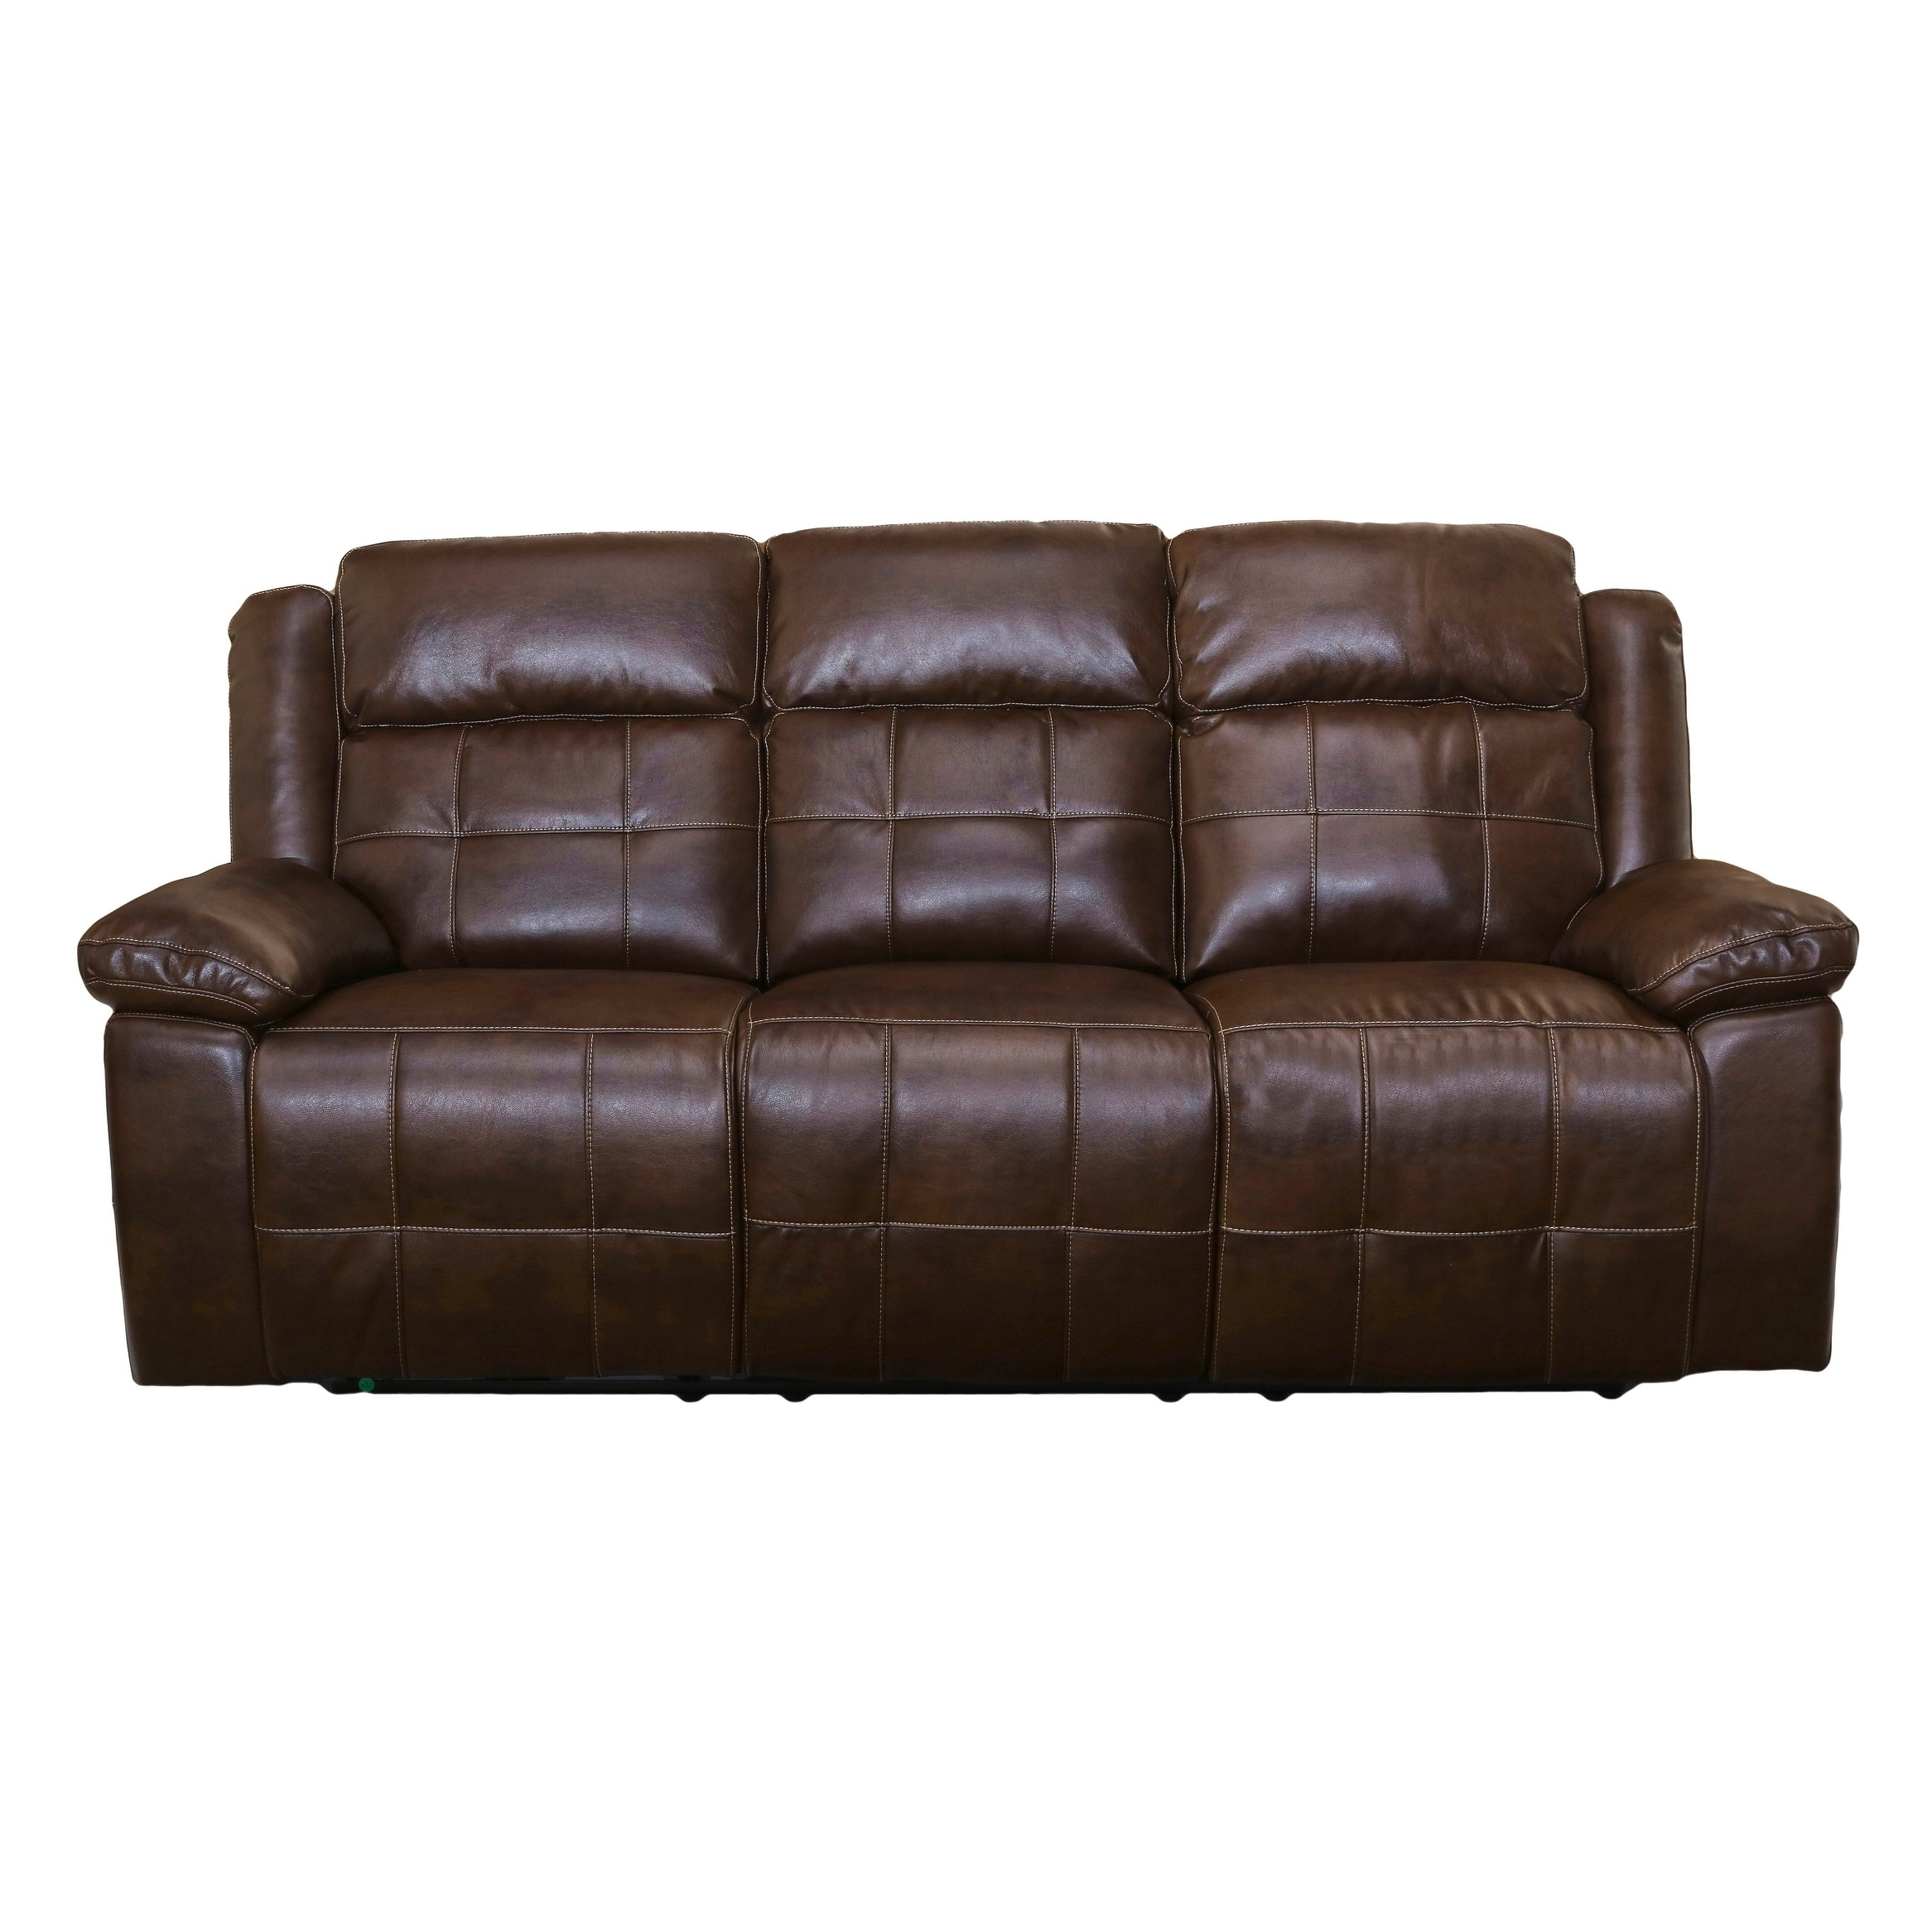 Clayton Picasso Penny Full Power Recliner Sofa With Headrest   Free  Shipping Today   Overstock.com   26109474